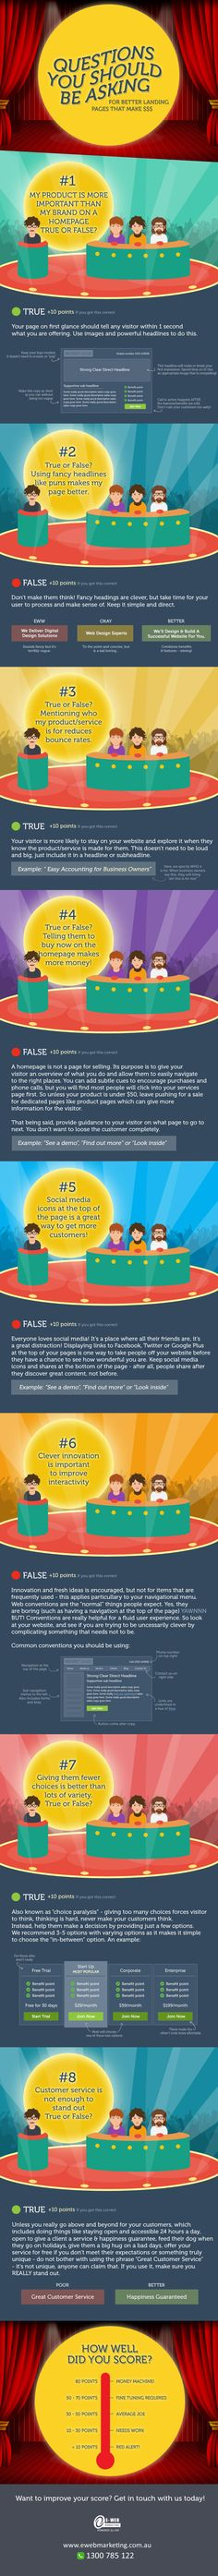 Quiz yourself to see if you know the best practices for landing pages. [Infographic]